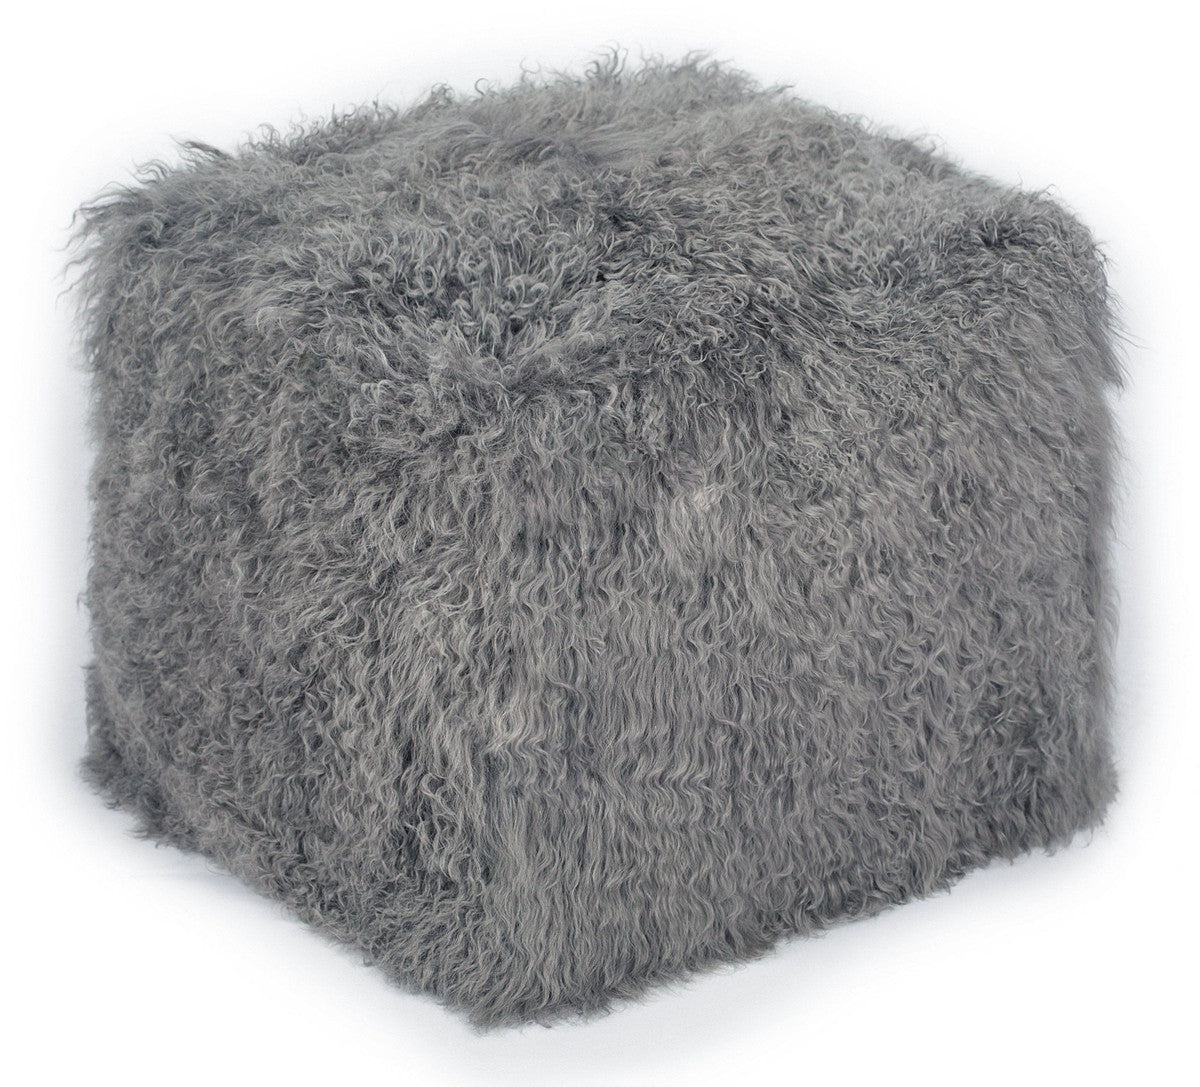 Tibetan Sheep Pouf